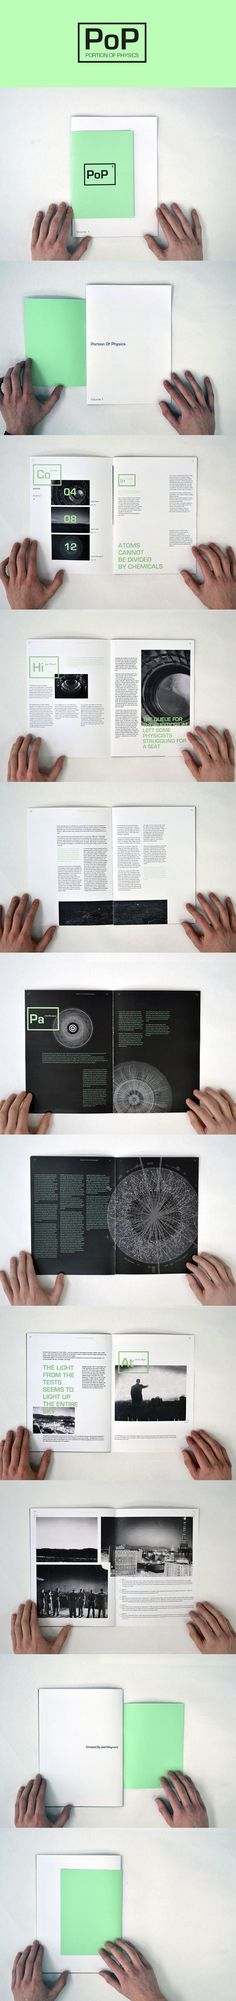 Portion of Physics | Magazine #science #higgsboson #magazine #spreads #book #layout #gridsystem #neon #photography #graphicdesign #booklet